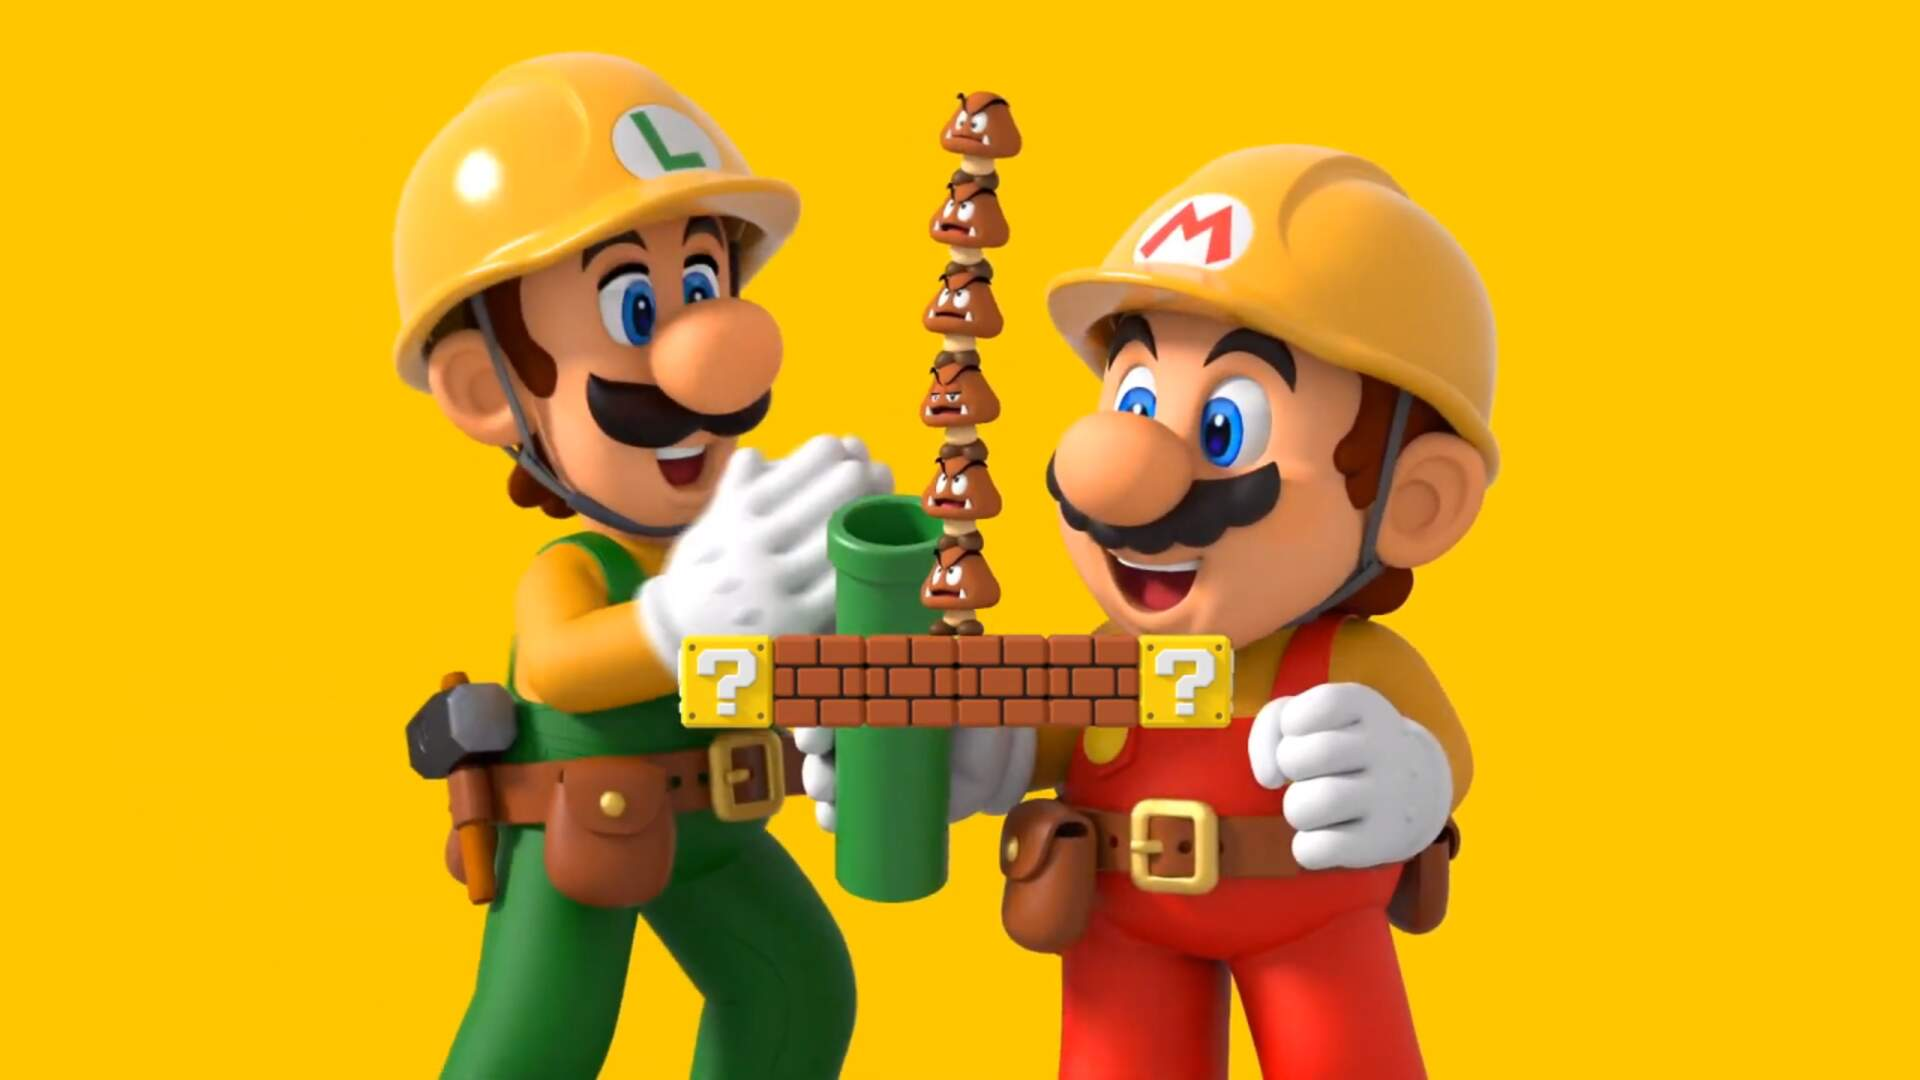 Lego Is Teasing a Line of Super Mario Products